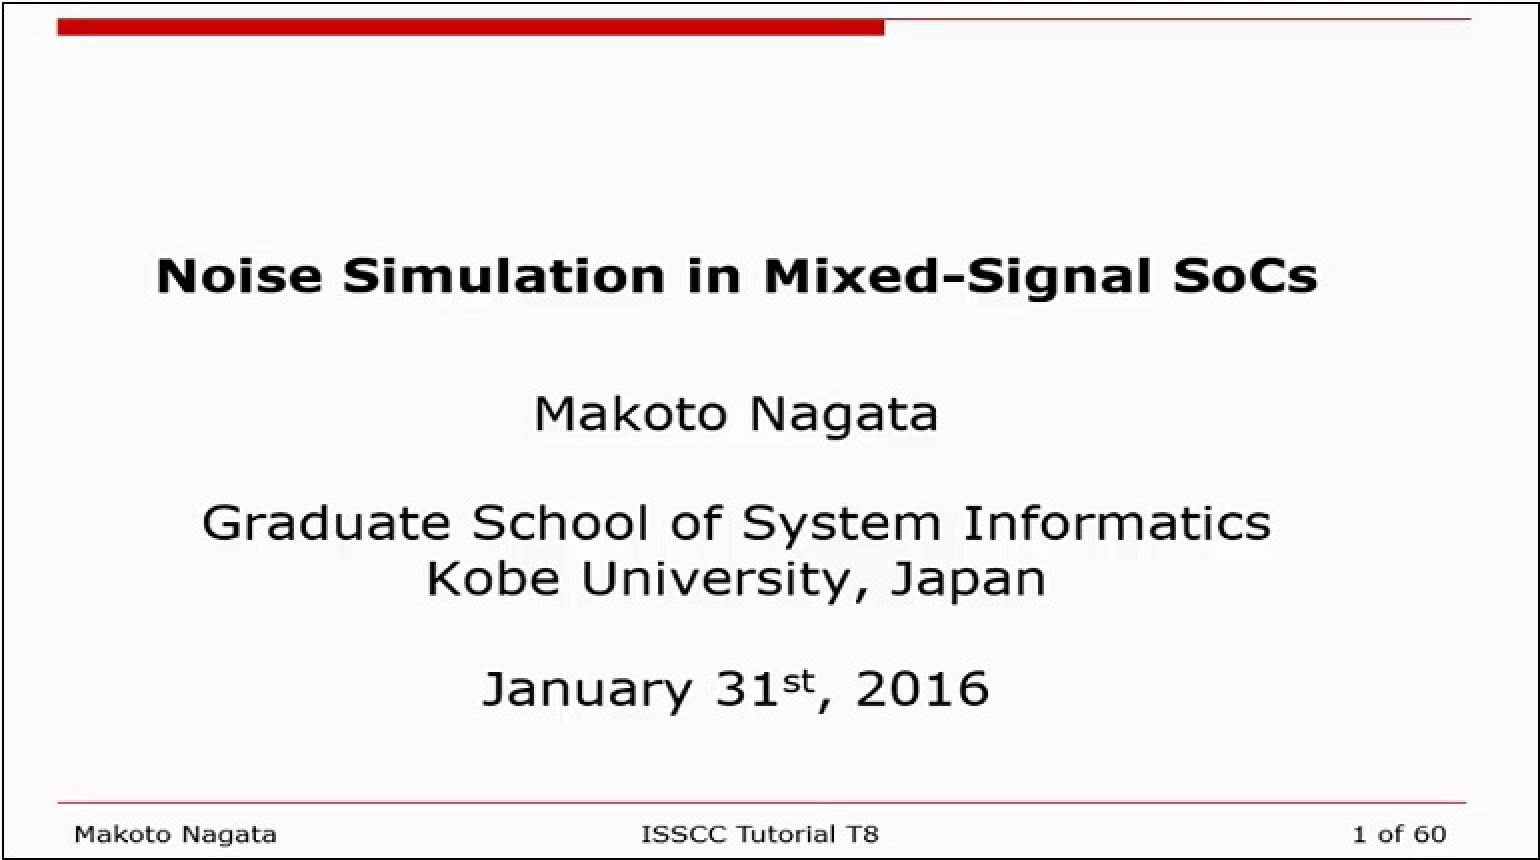 Noise Simulation in Mixed-Signal SoCs Video